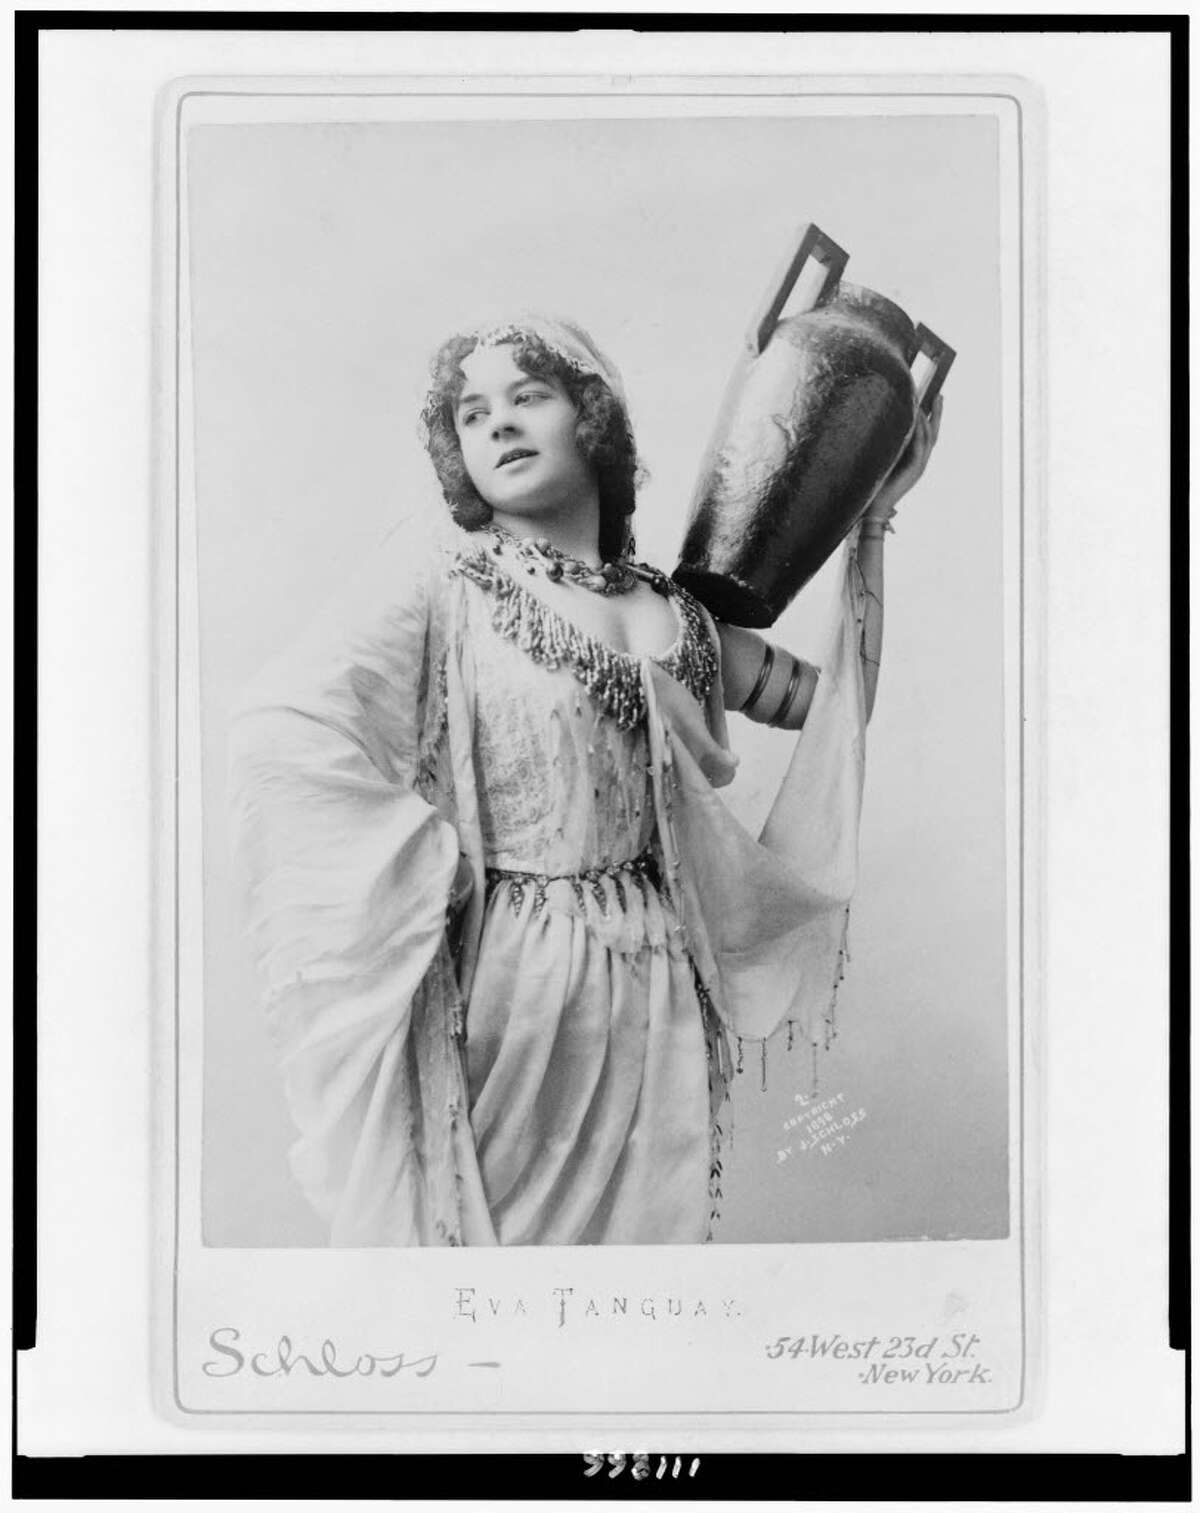 Eva Tanguay, who supposedly haunts Cohoes Music Hall, in 1898. (J. Schloss / Library of Congress)